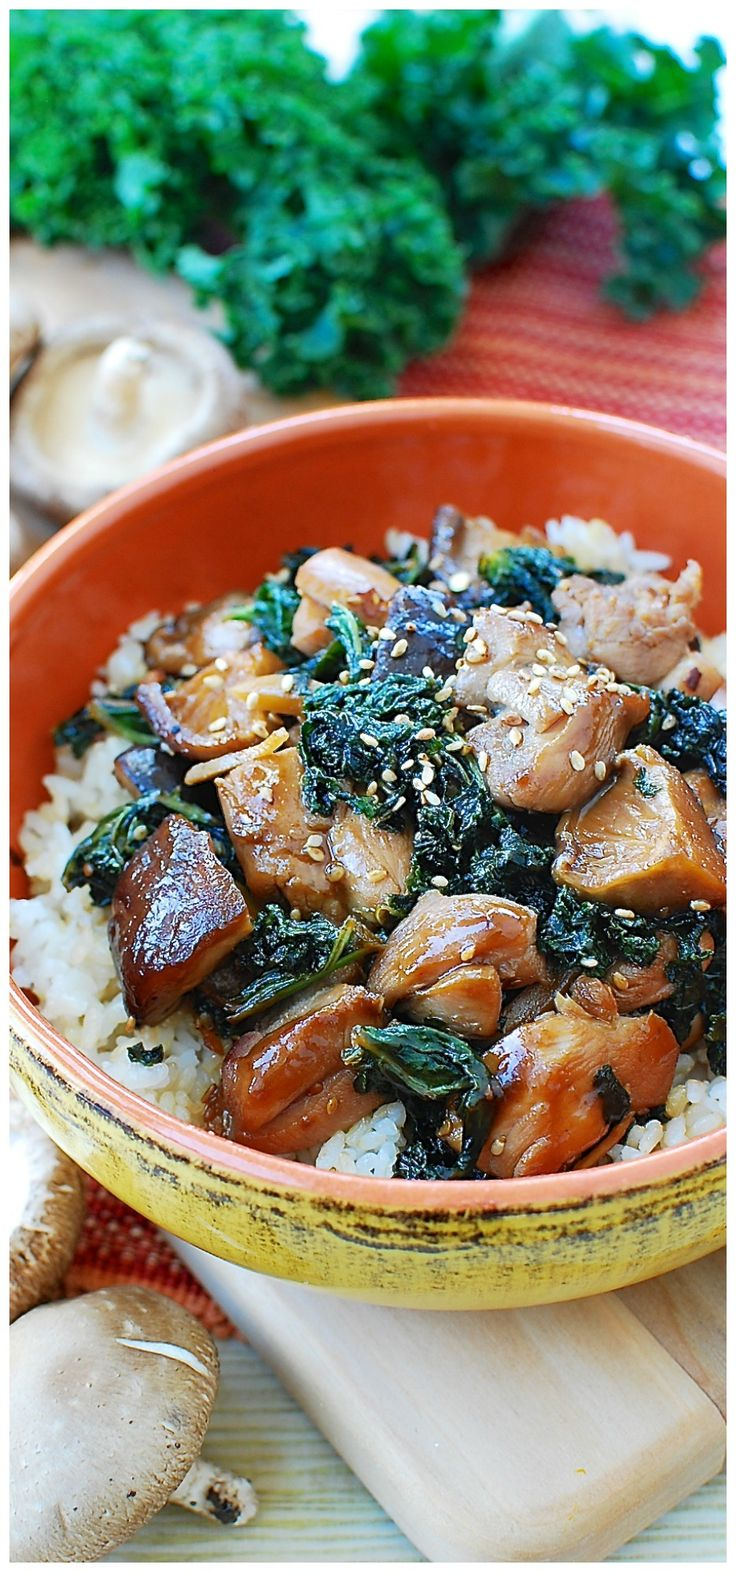 Stir-fried chicken and kale - The slightly sweet and savory sauce in this…